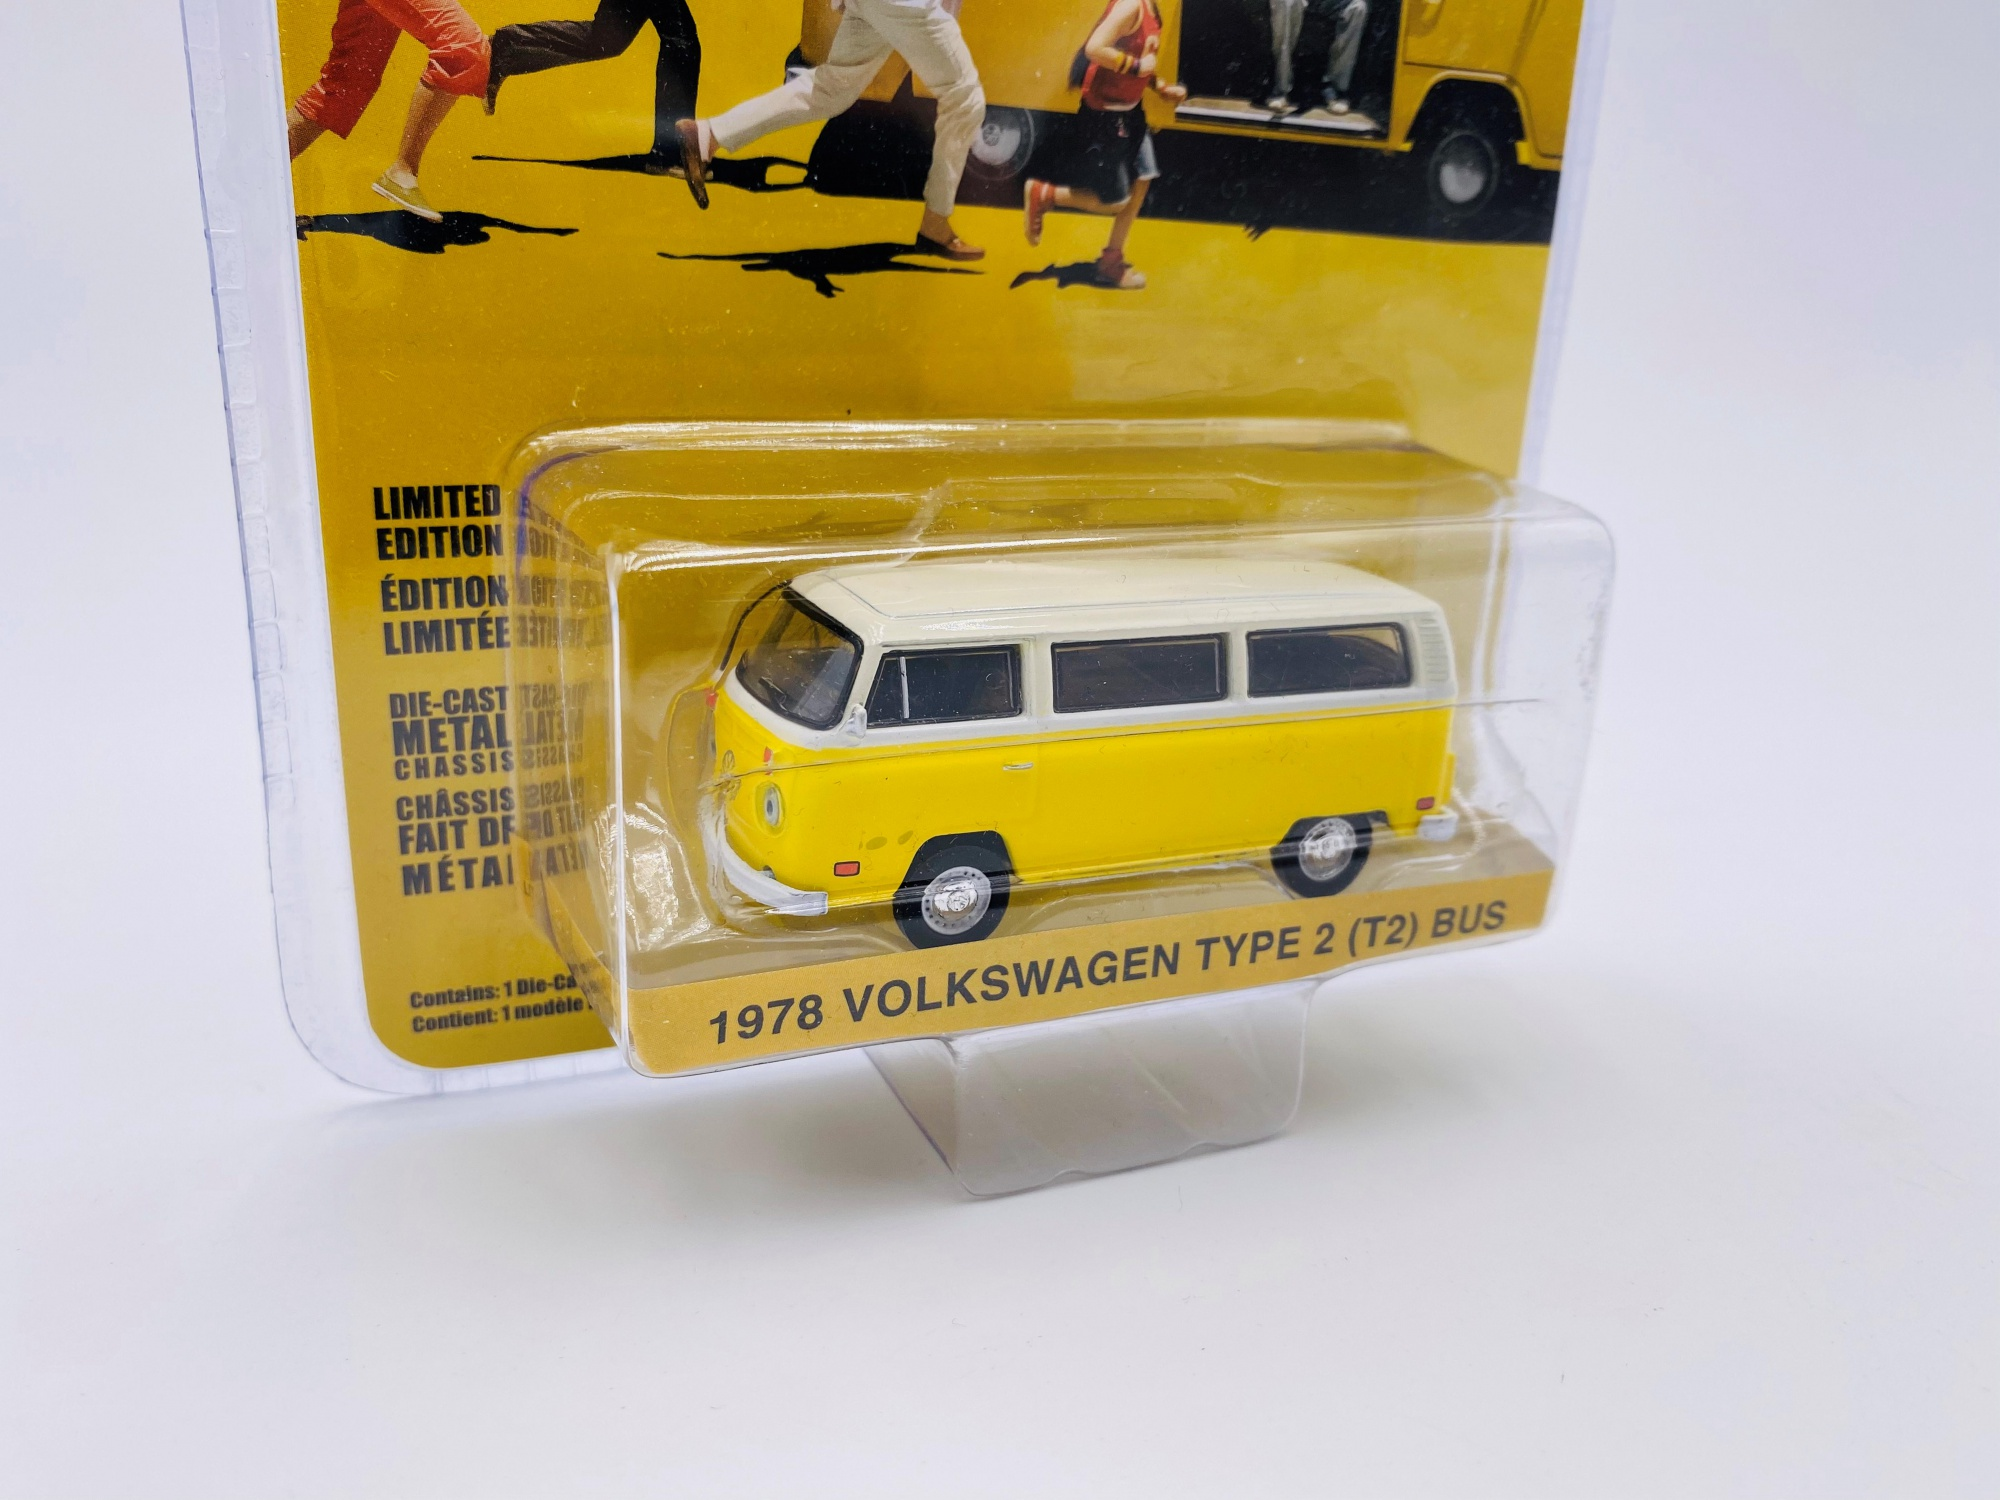 Volkswagen Type 2 BUS 1978